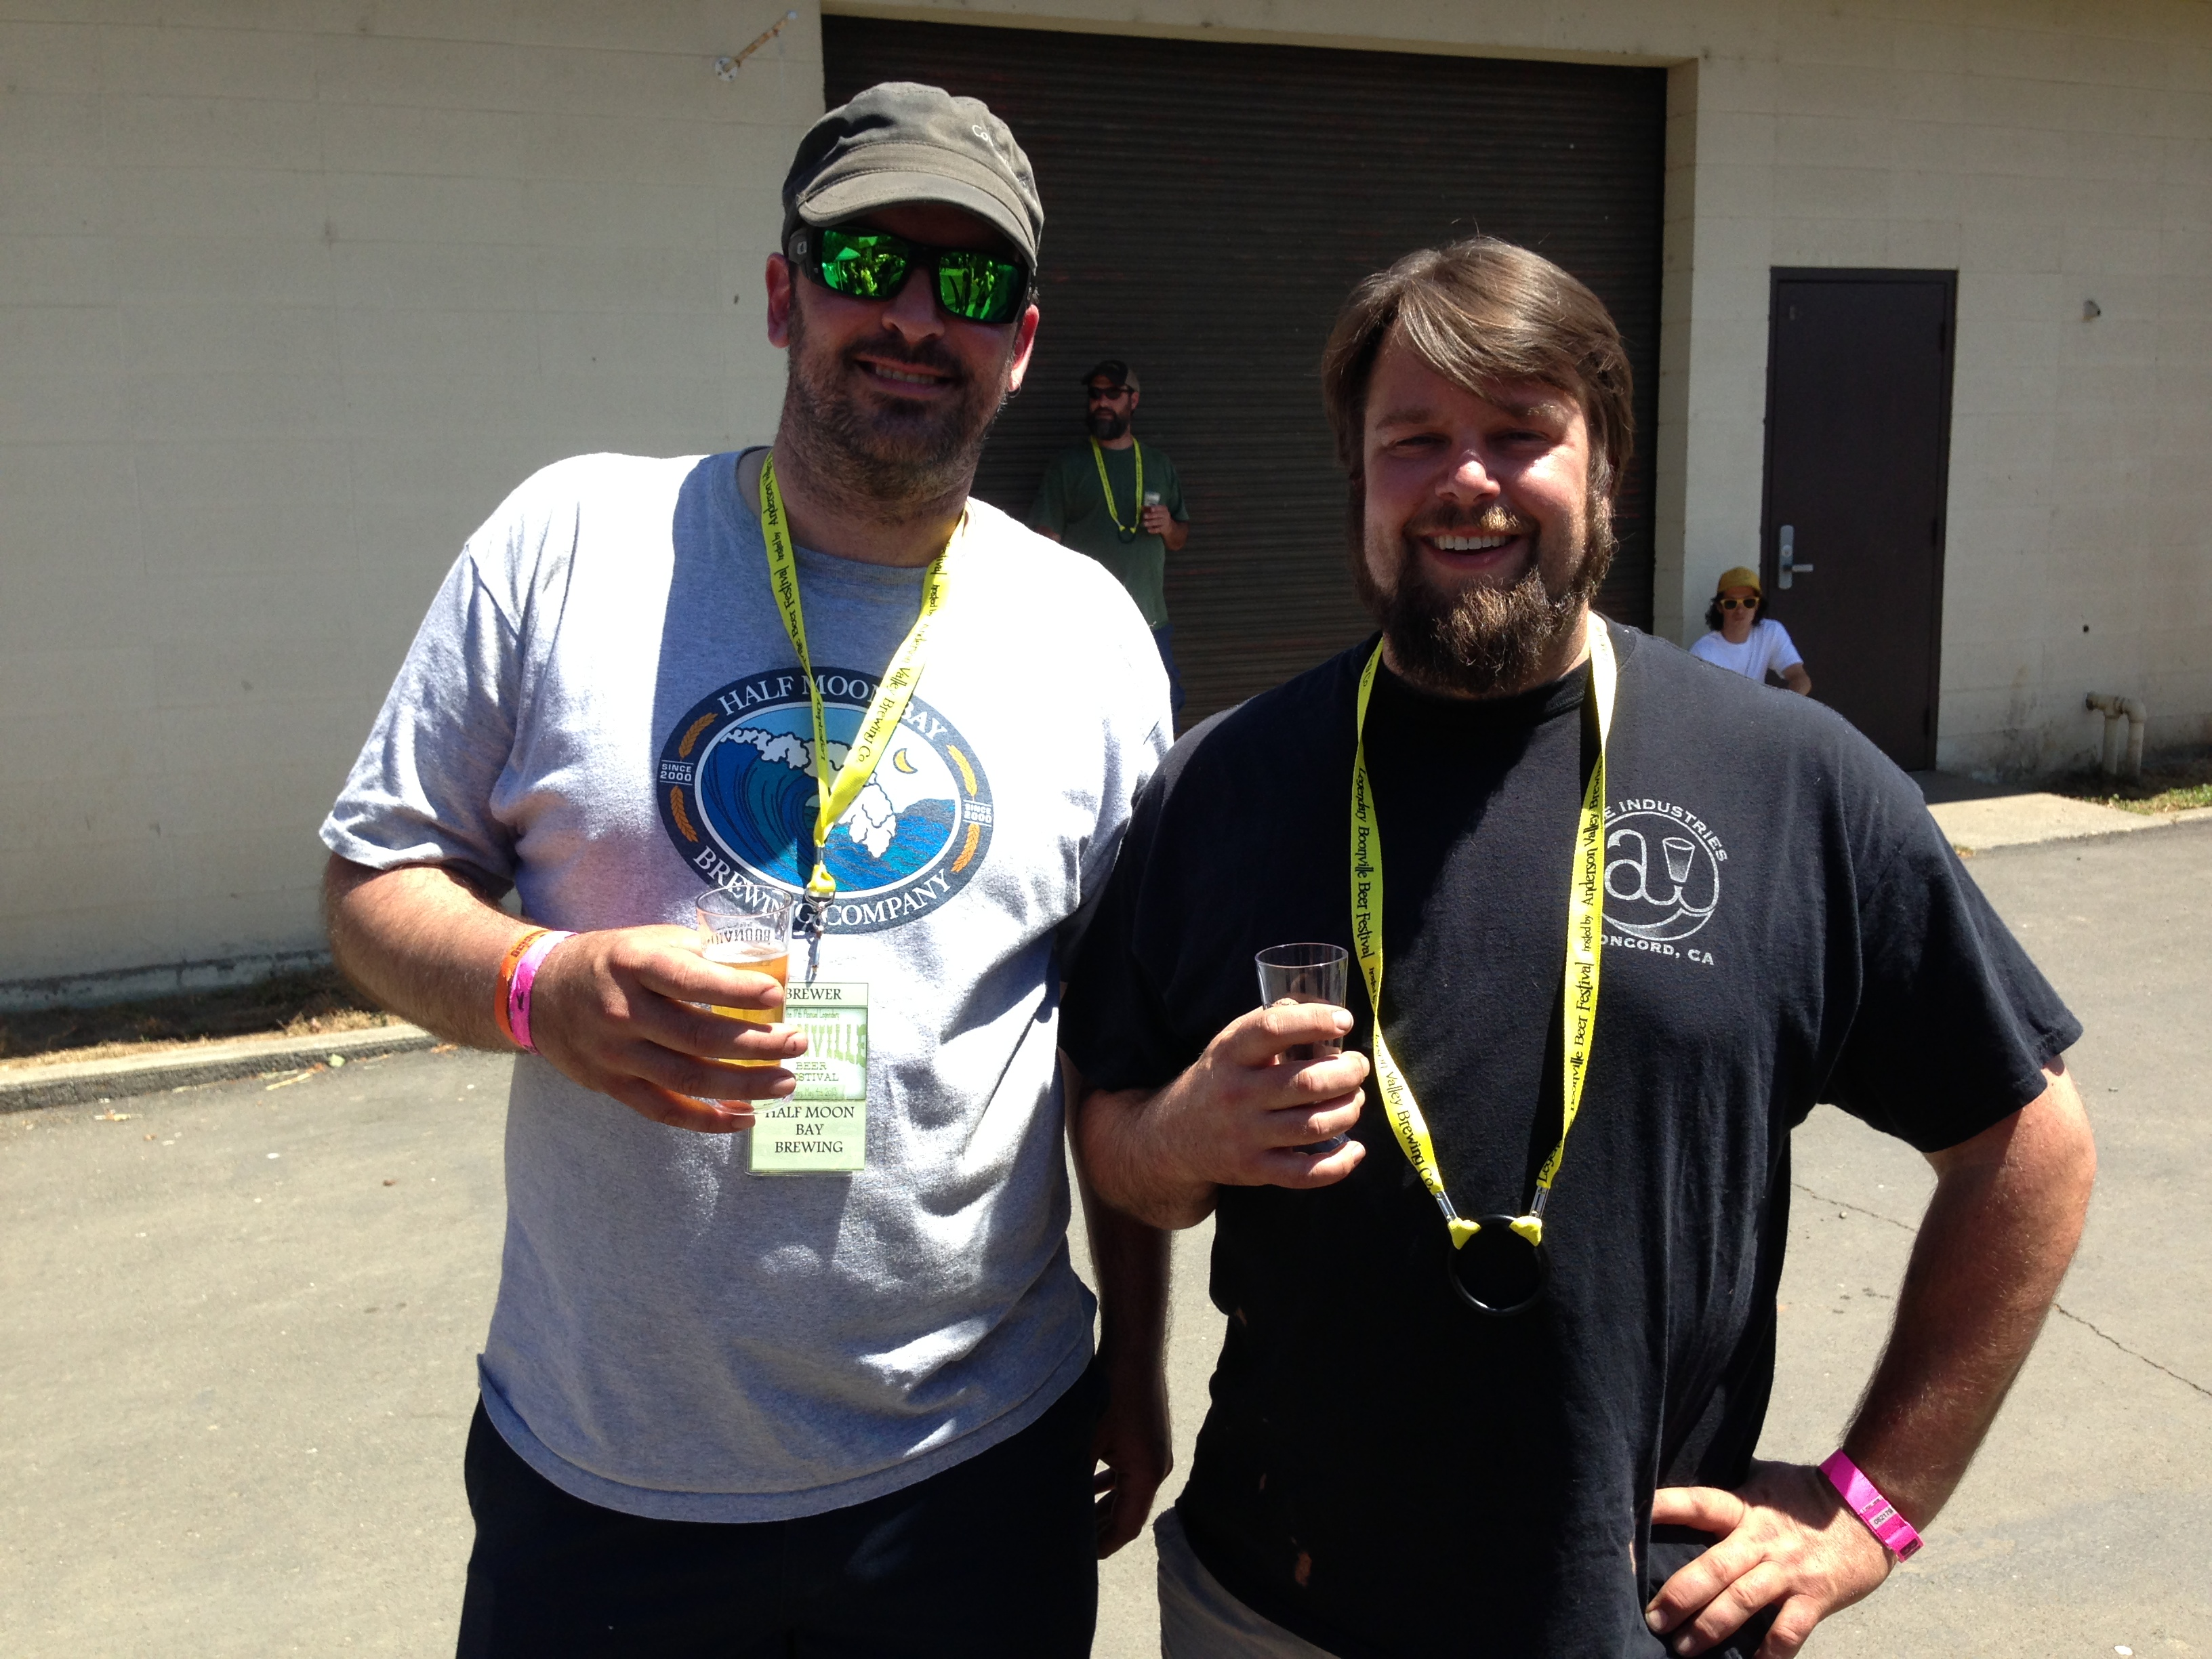 Half Moon Bay brewer James Costa (left) and Ale Industries owner Stephen Lopas enjoy beers at Boonville Beer Fest 2013